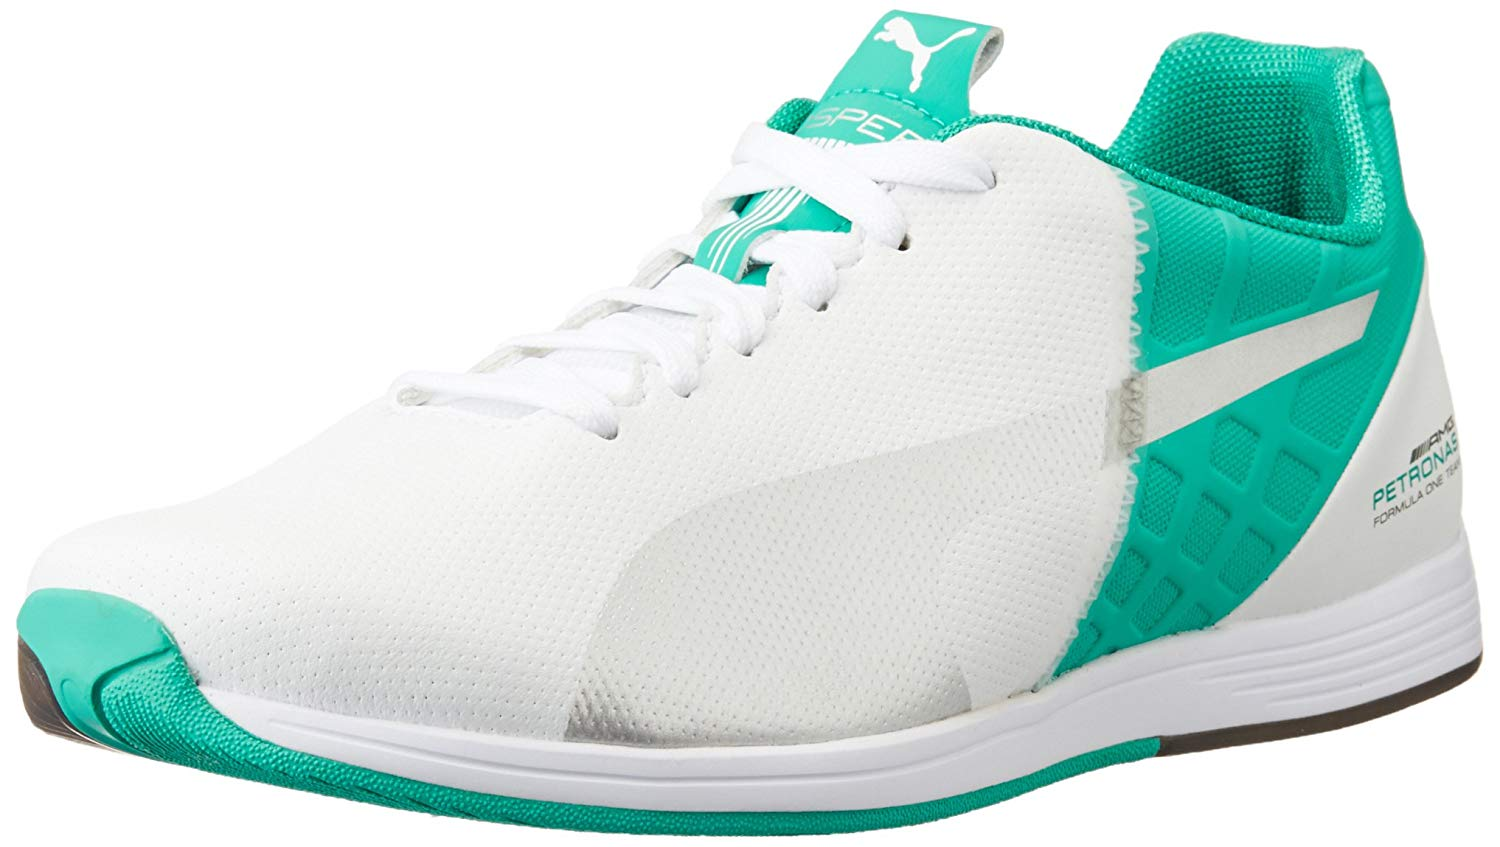 9503329508d Home   Puma MAMGP Evospeed 1.4 Mercedes F1 Mens Motorsport Casual Trainer  Shoes. Touch to zoom